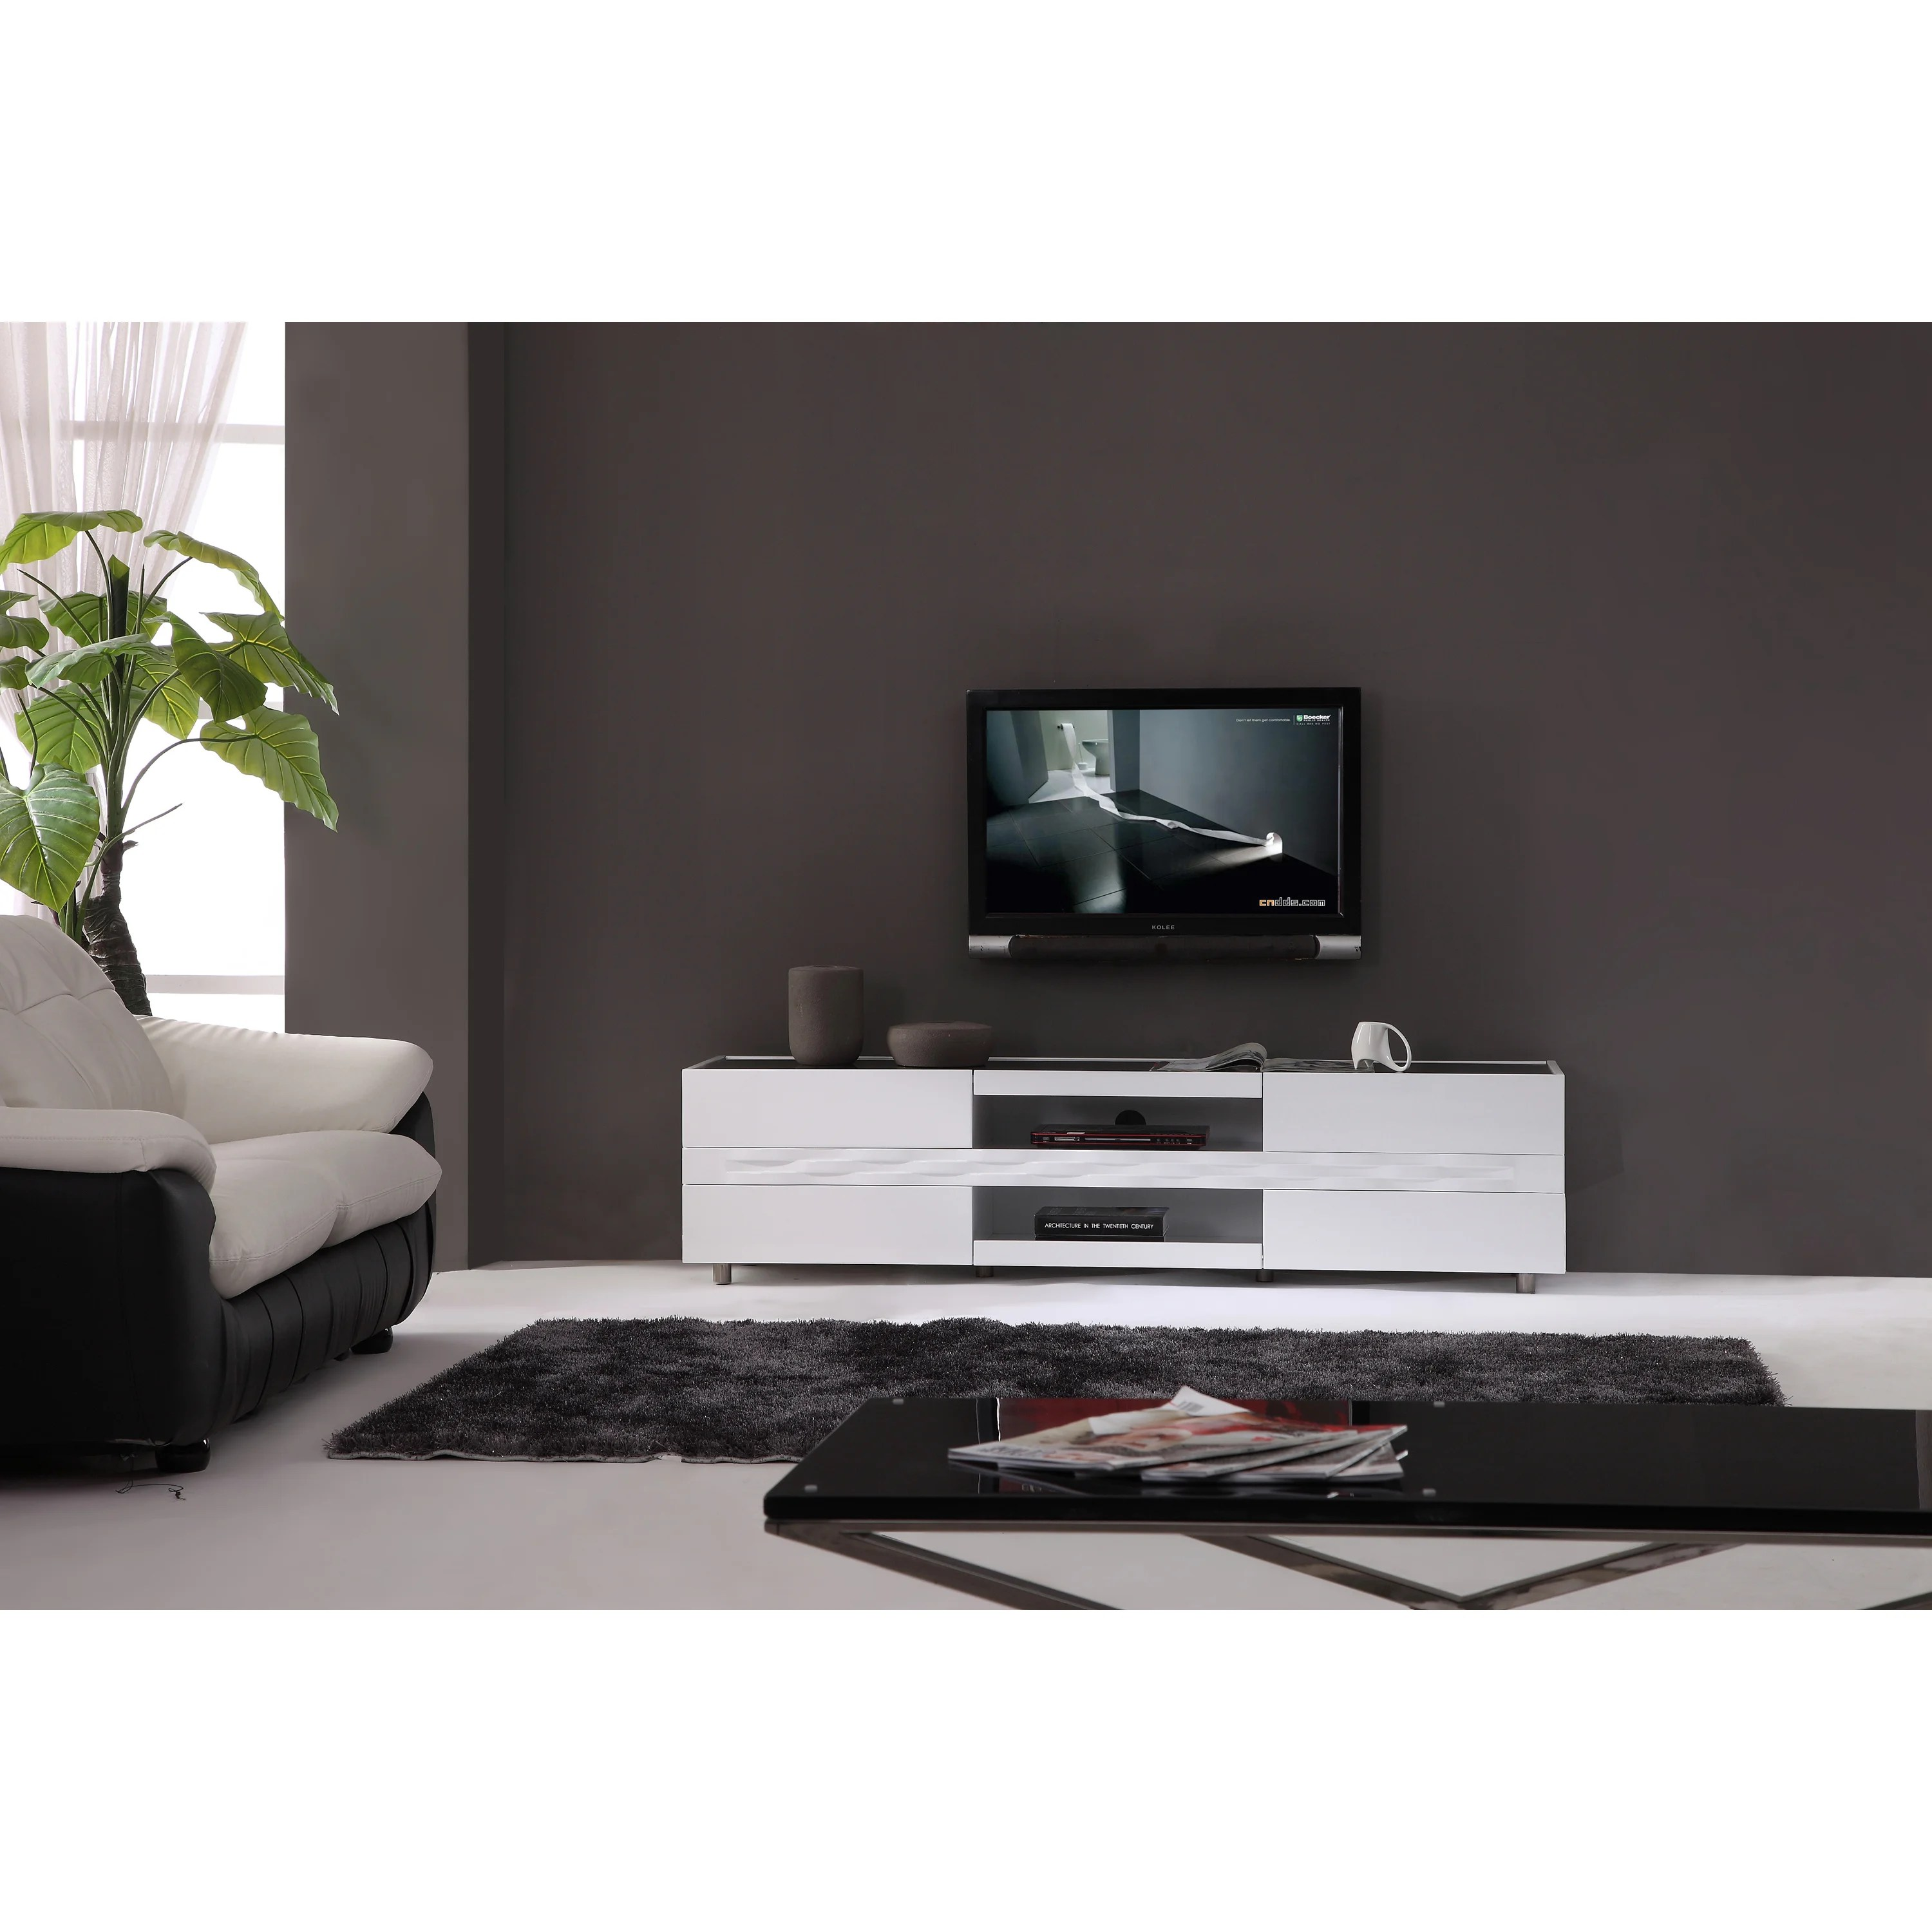 Shop Firenze White Two Drawer Modern Tv Stand On Sale Overstock 5899956